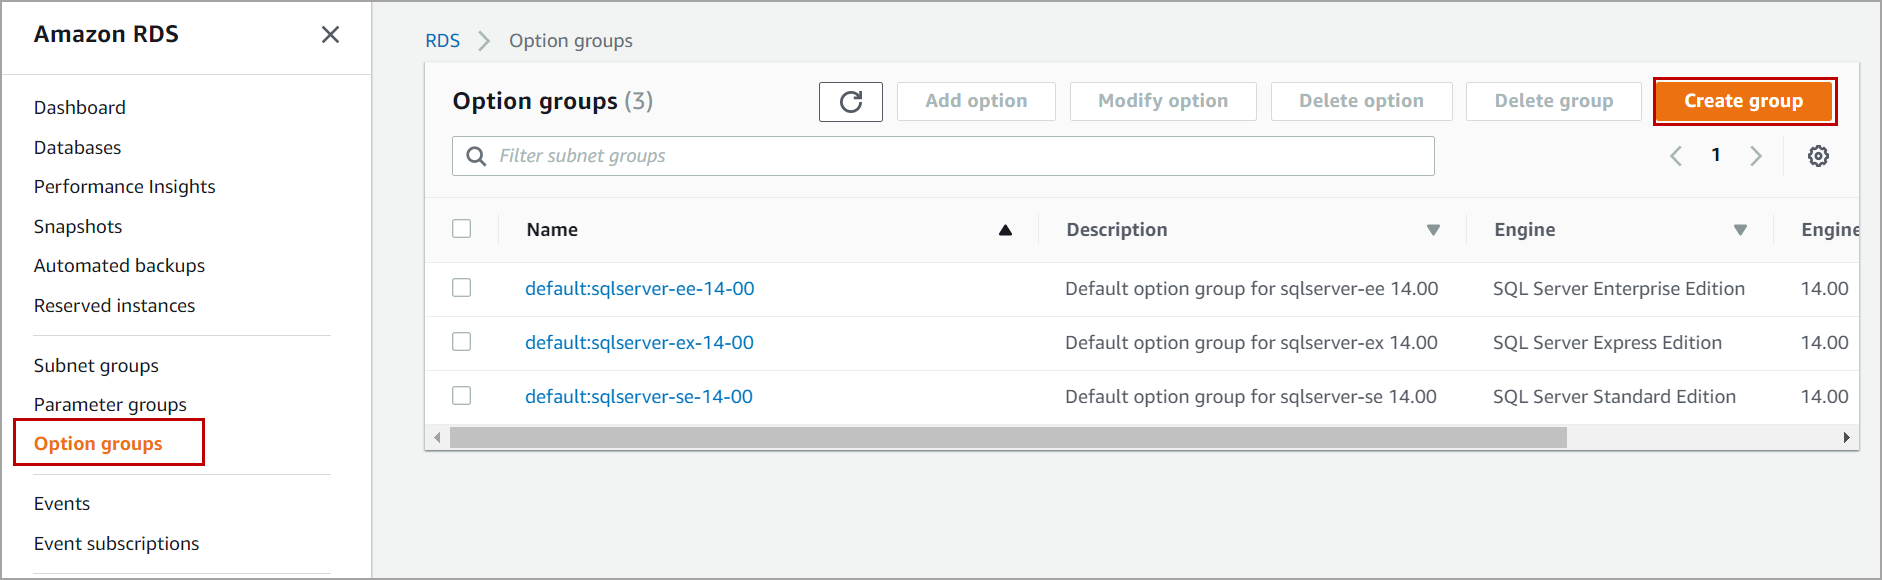 option groups in AWS RDS SQL Server